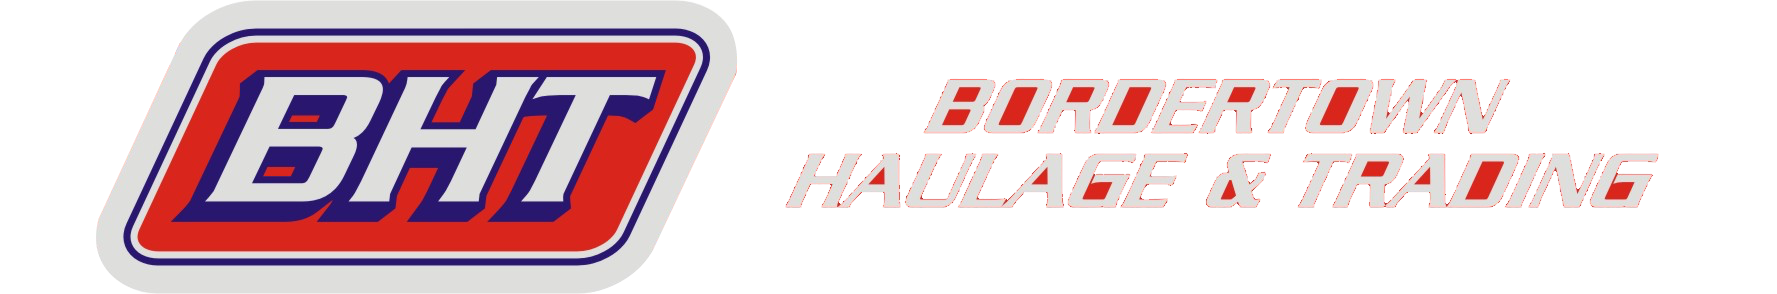 Bordertown Haulage logo